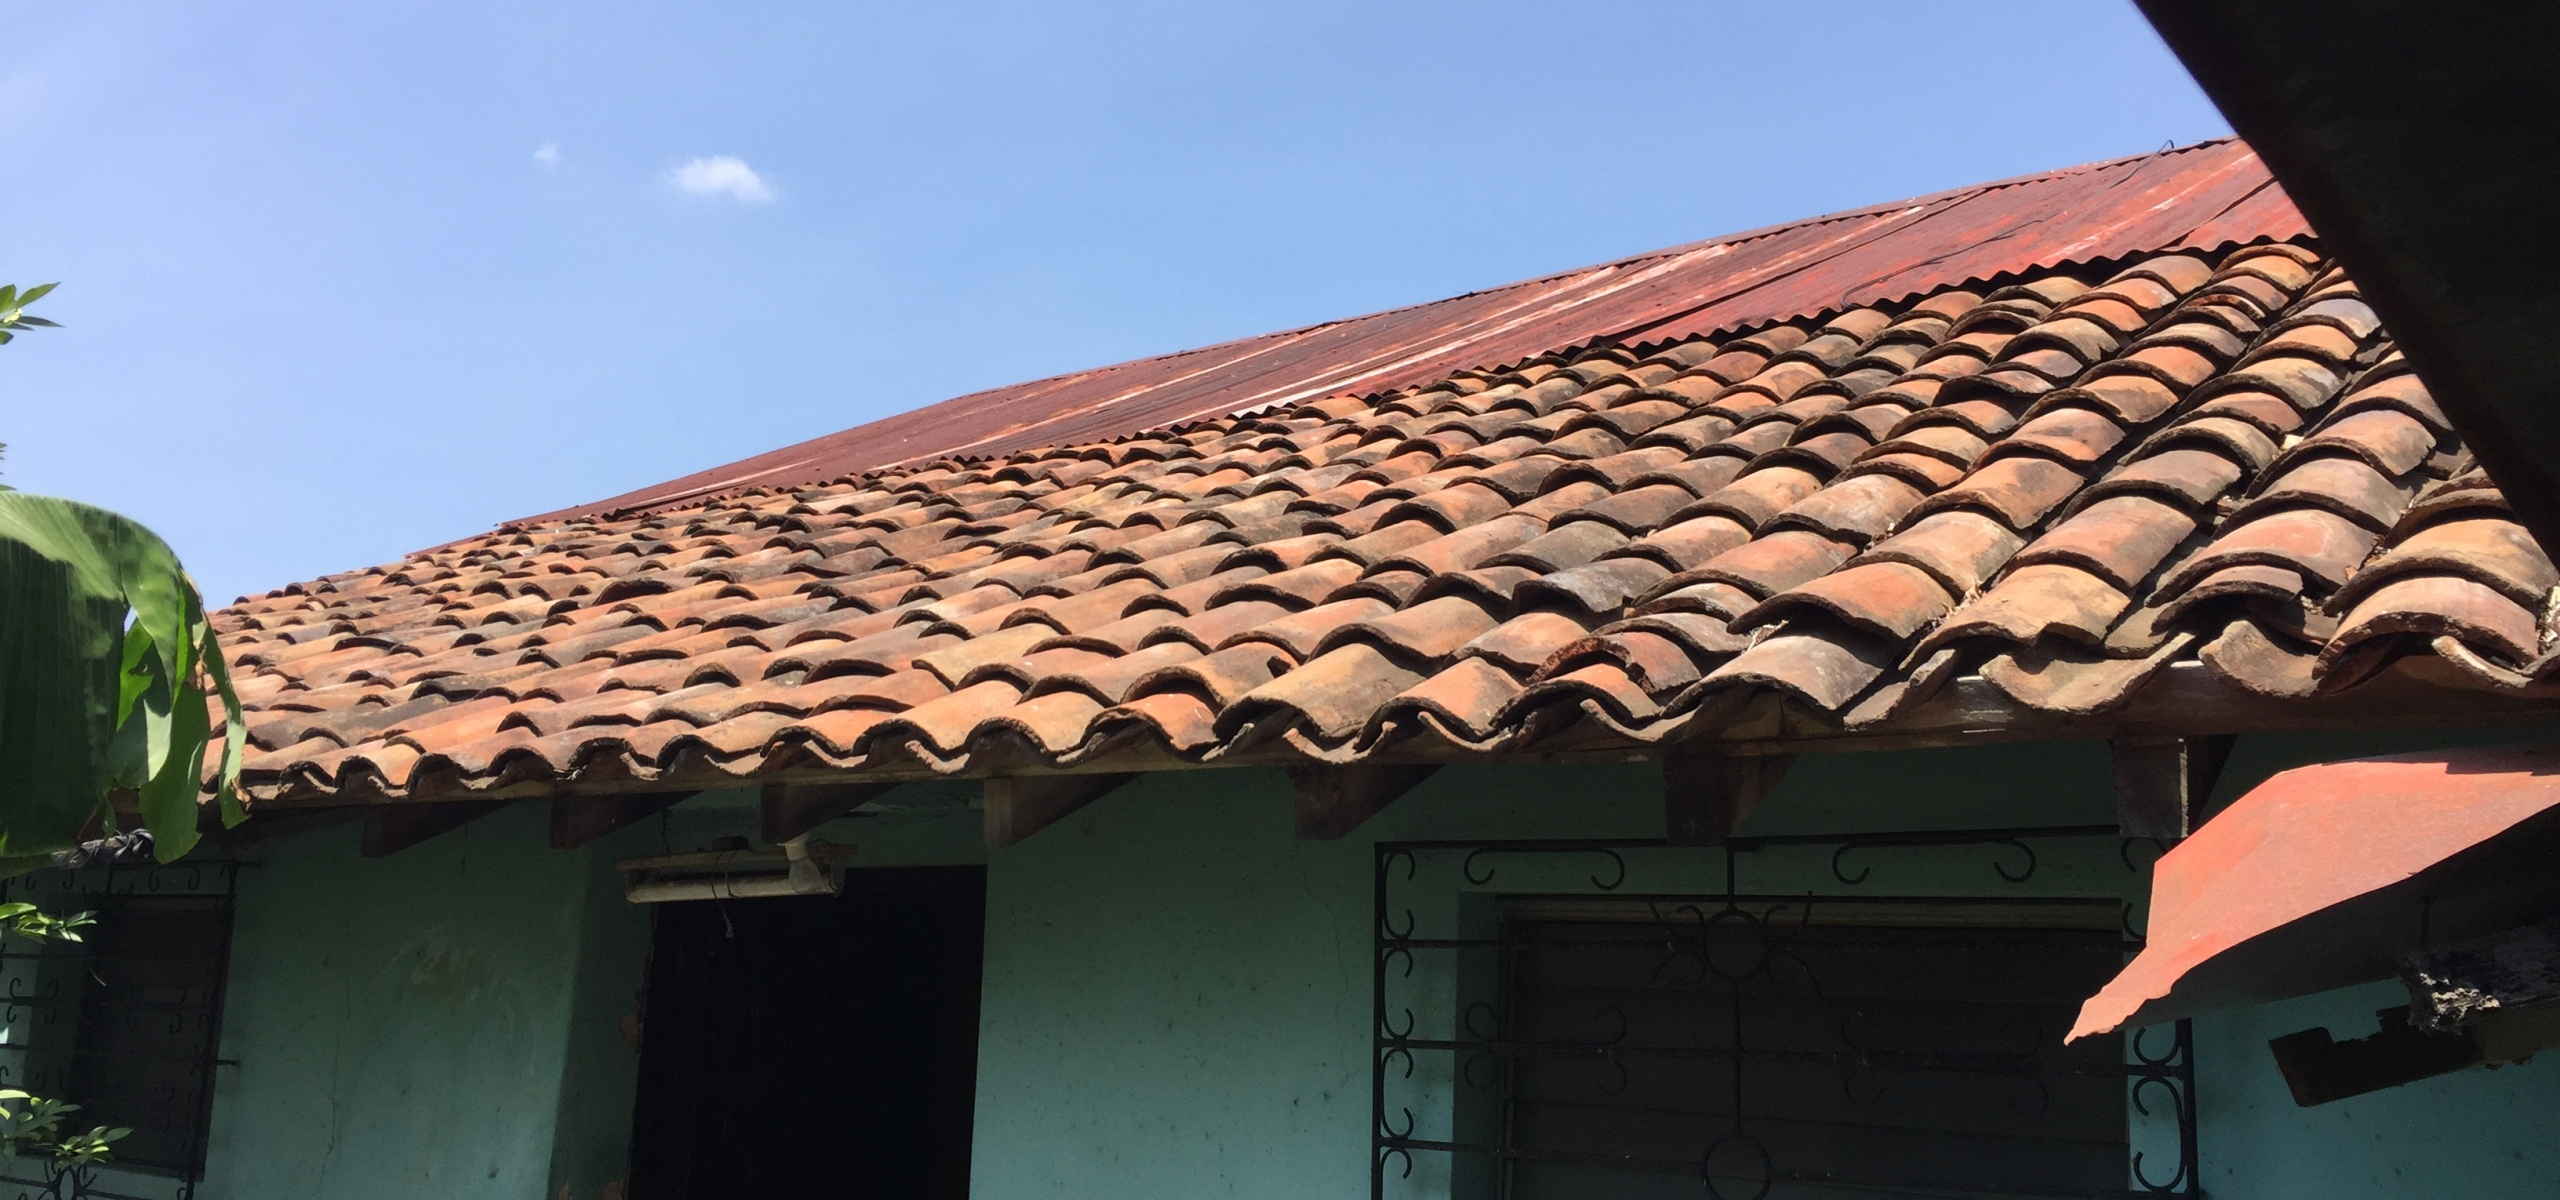 real estate, buying, home, house, Leon, Nicaragua, roof, shingles,